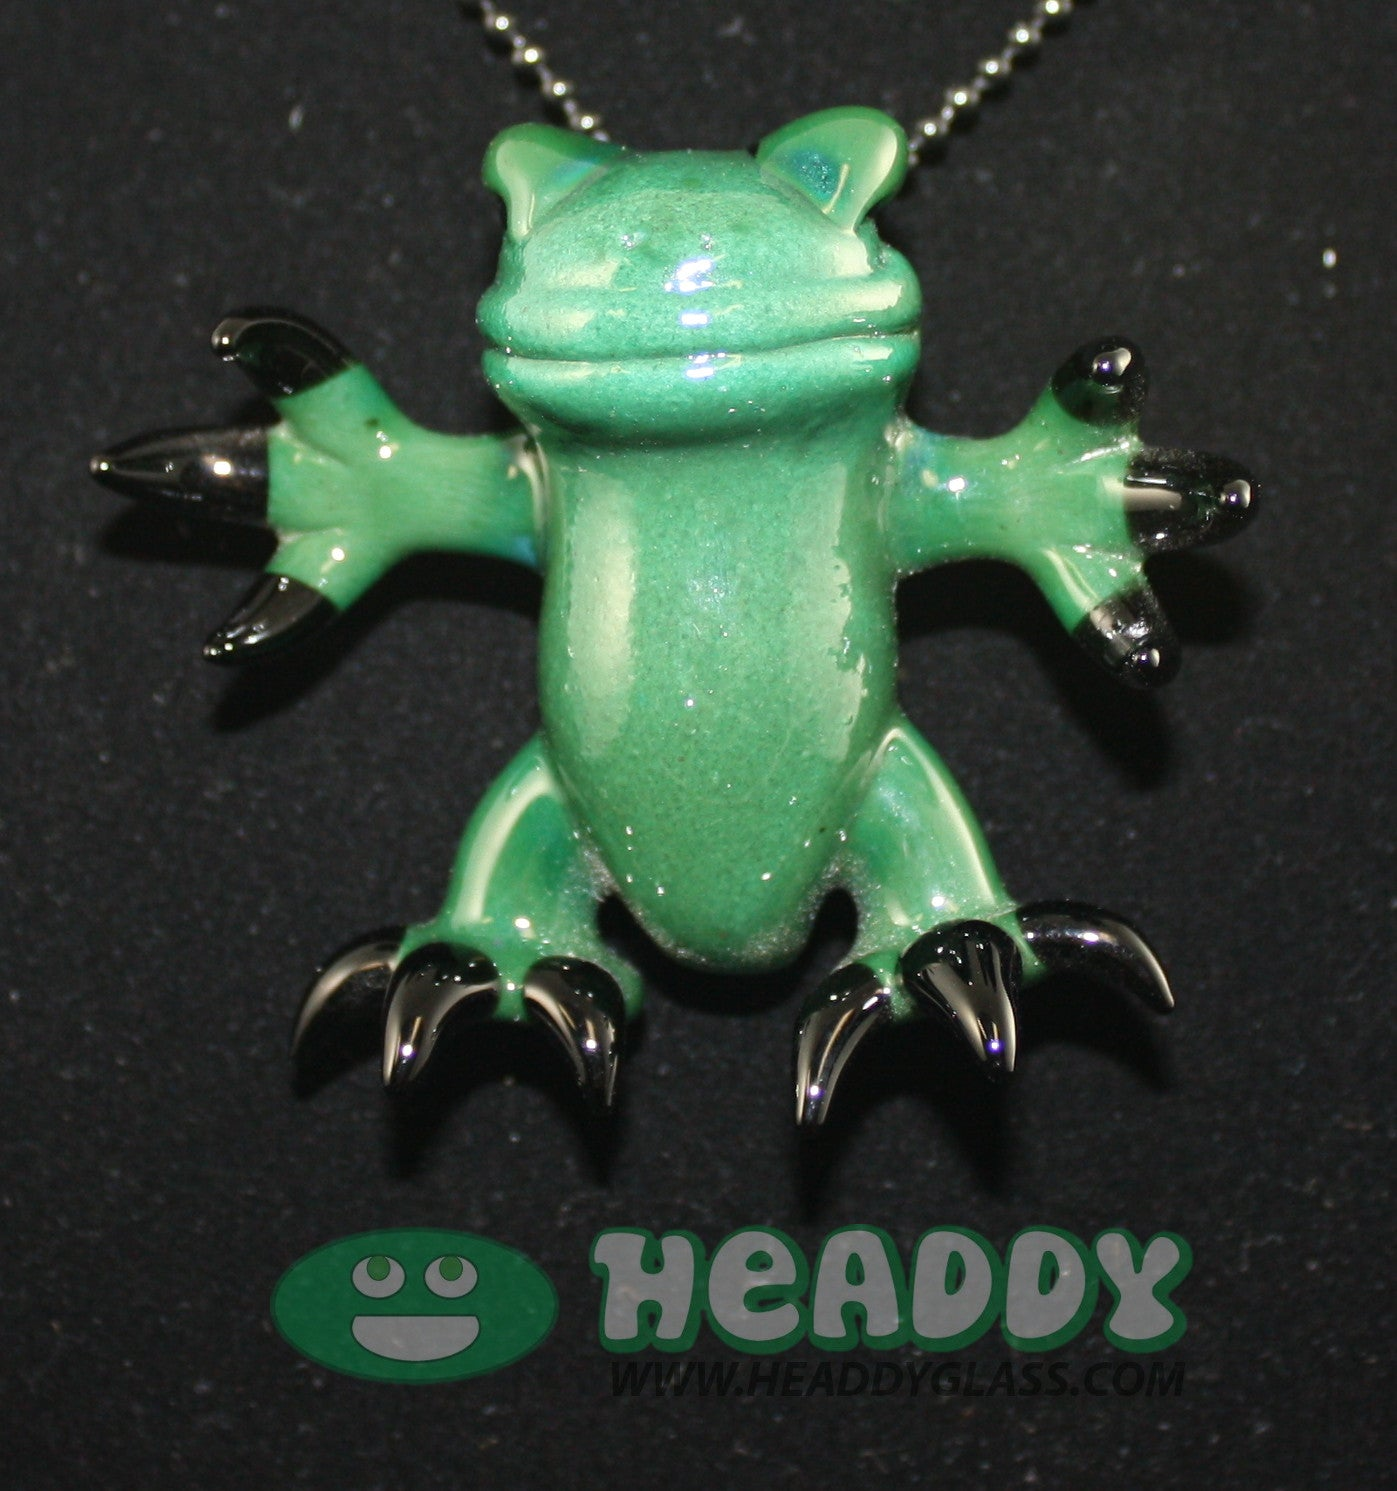 Gemini Andy critter pendant #16 - Headdy Glass